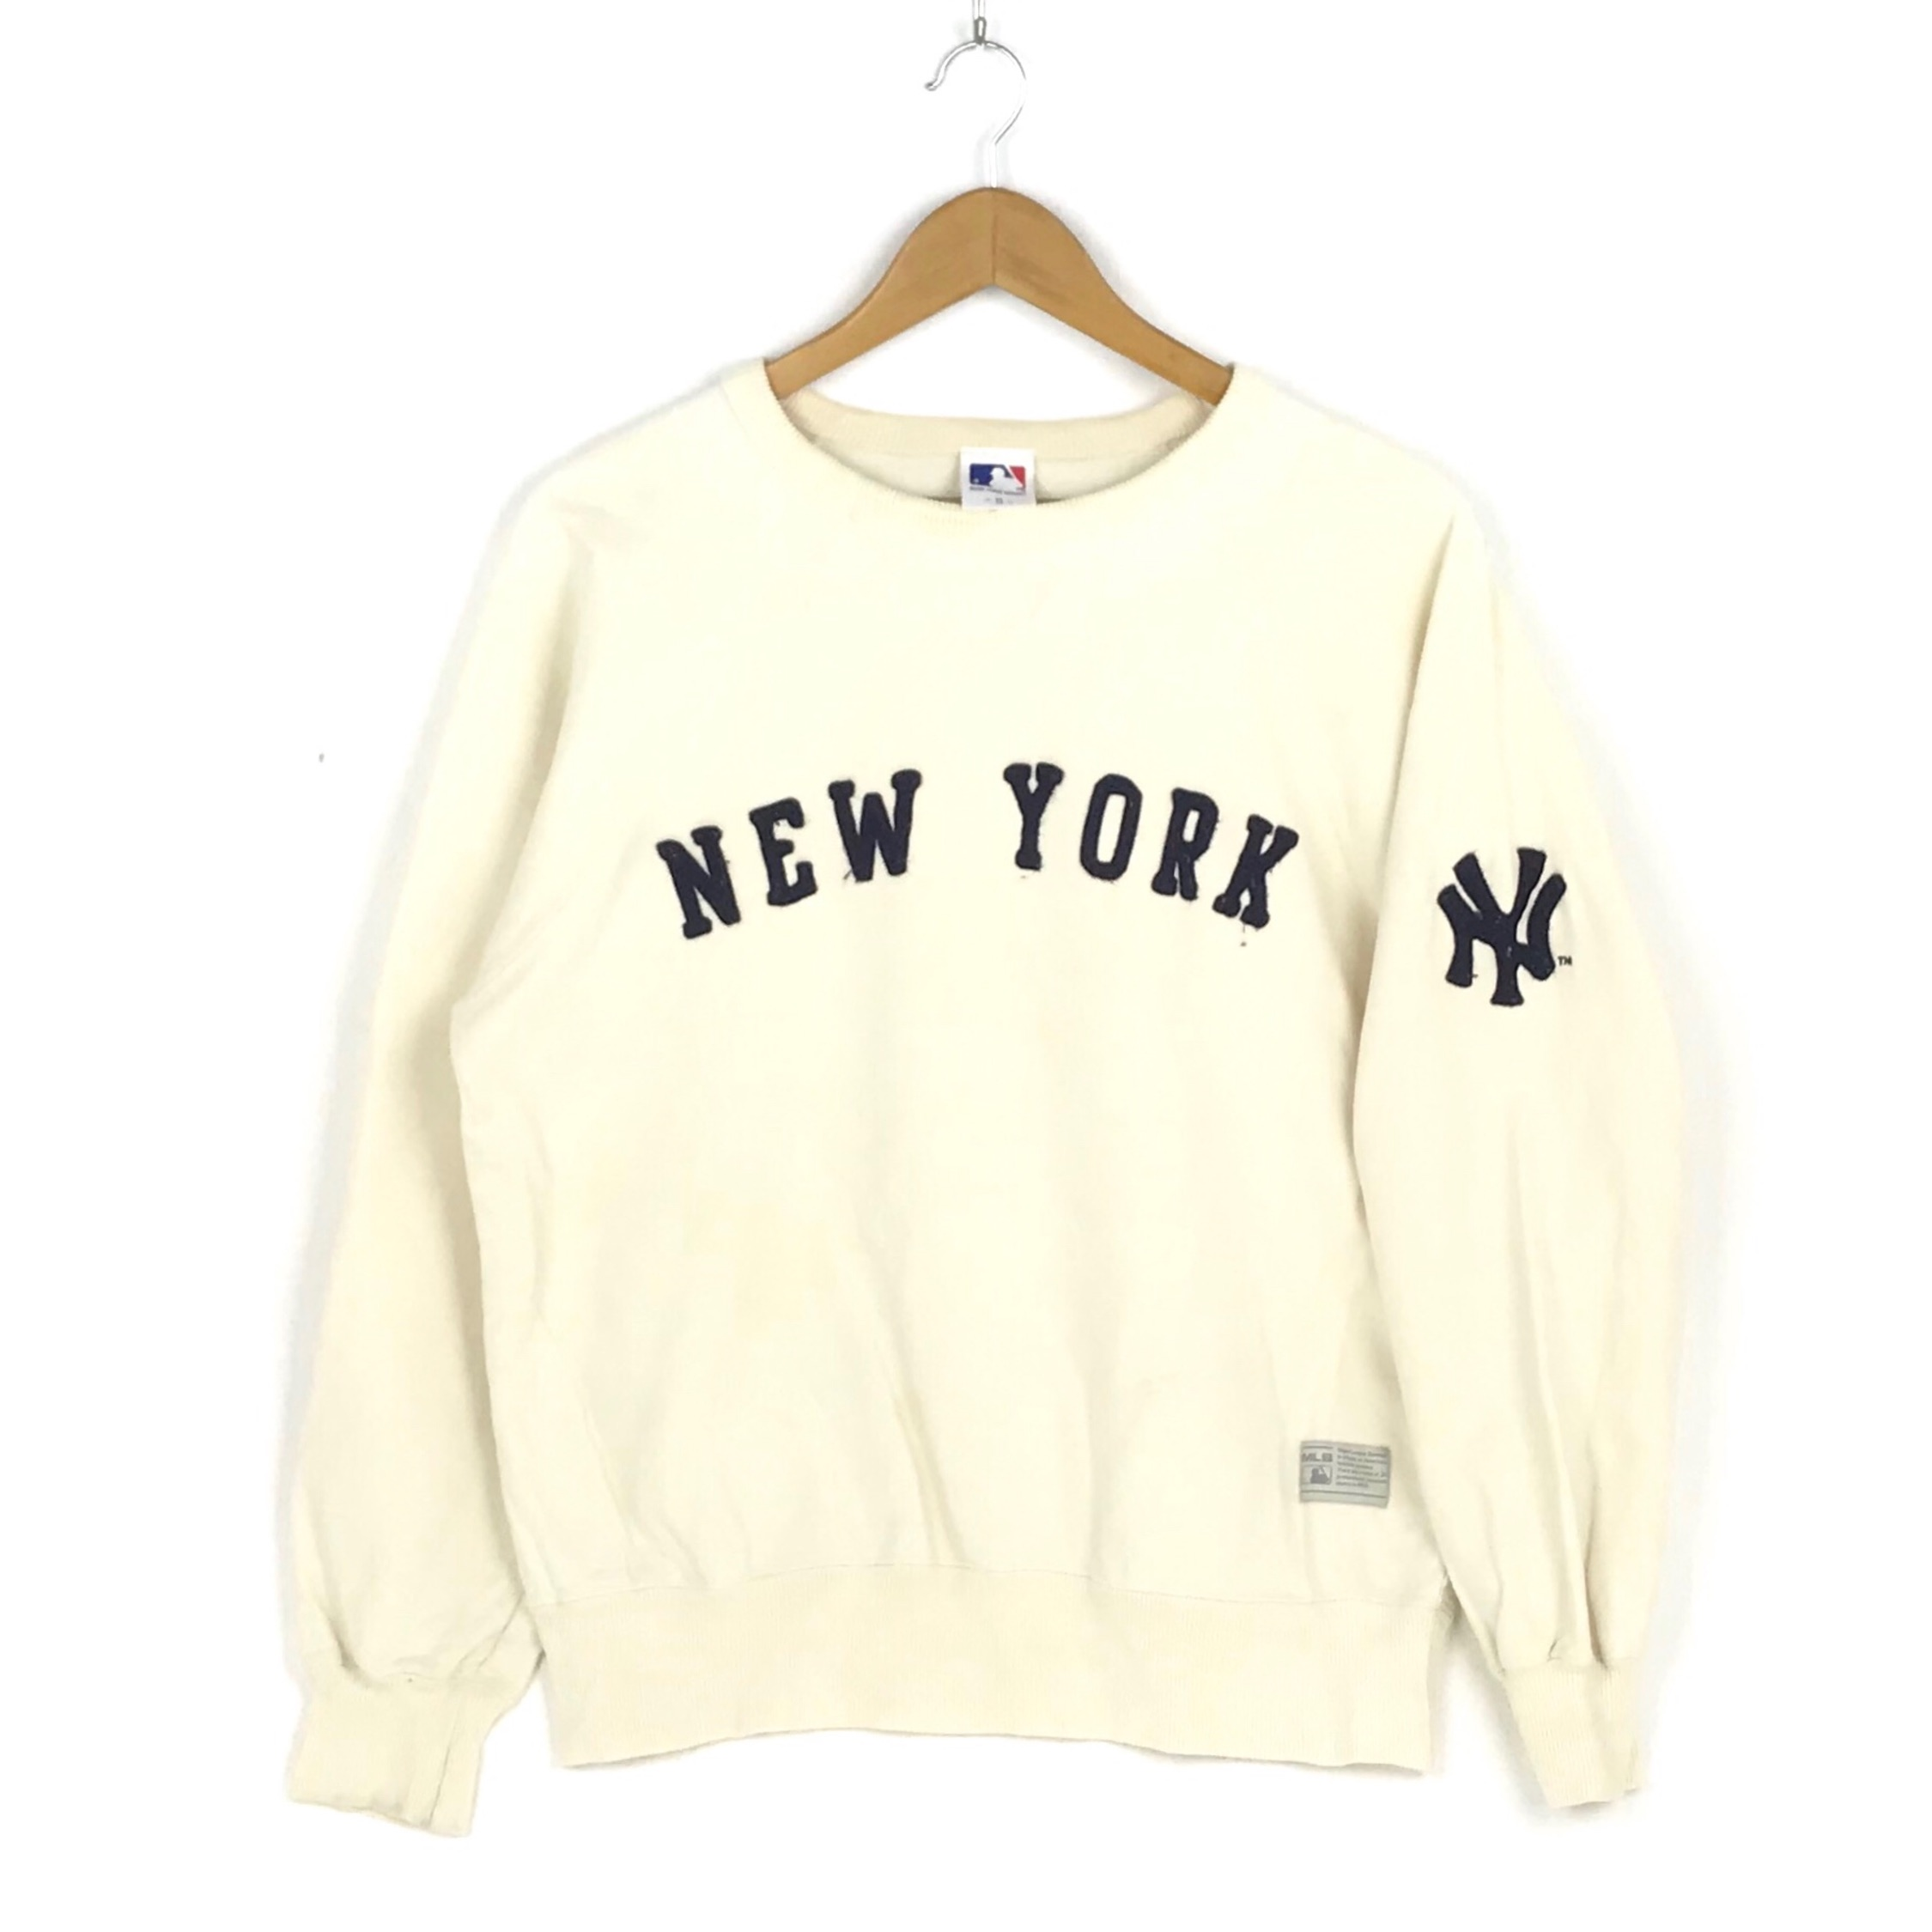 brand new c7265 c6f16 Vintage New York Yankees Mlb Sweatshirt